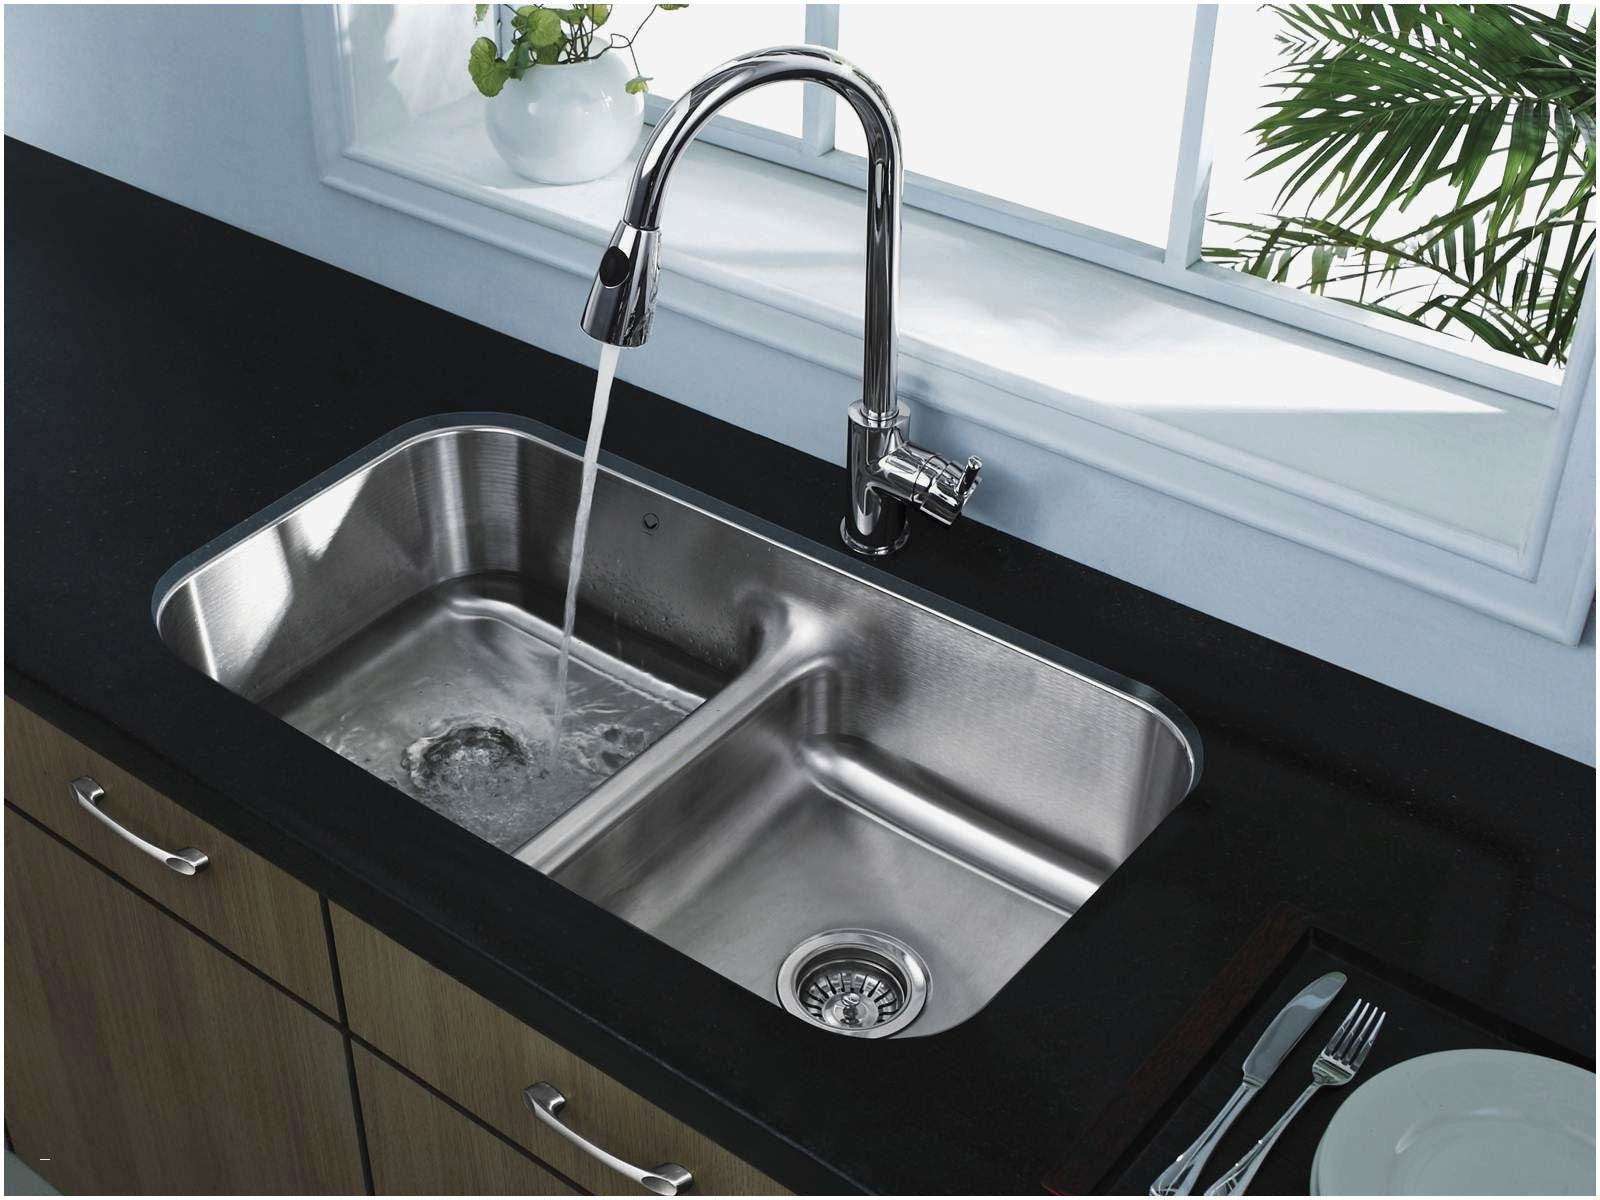 Kitchen Remodel Design Lovely Kitchen Cabinet Prices Home Ideas Replacing Kitchen Countertops Kitchen Sink Design Best Kitchen Sinks